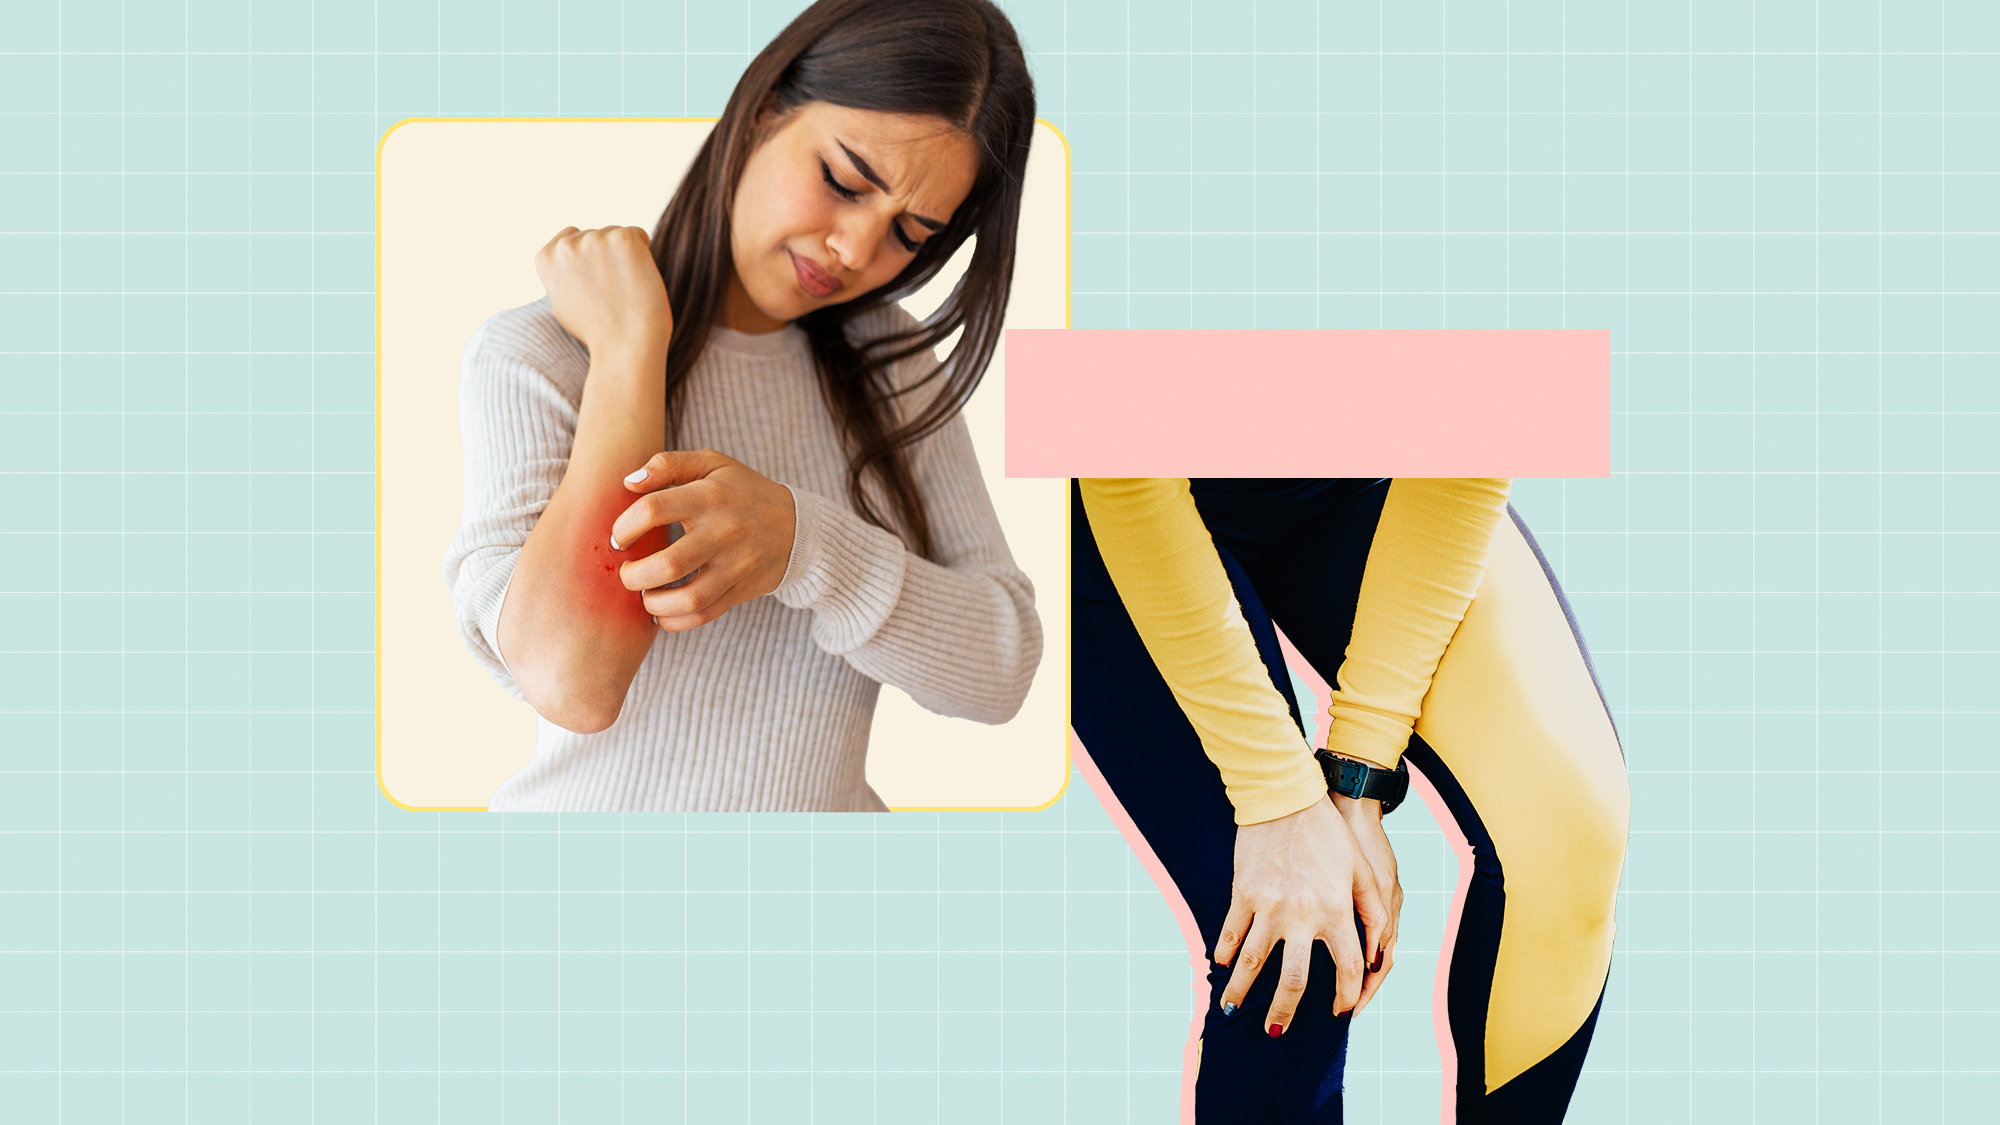 A composite image of a woman itching her arm and another woman holding her knee